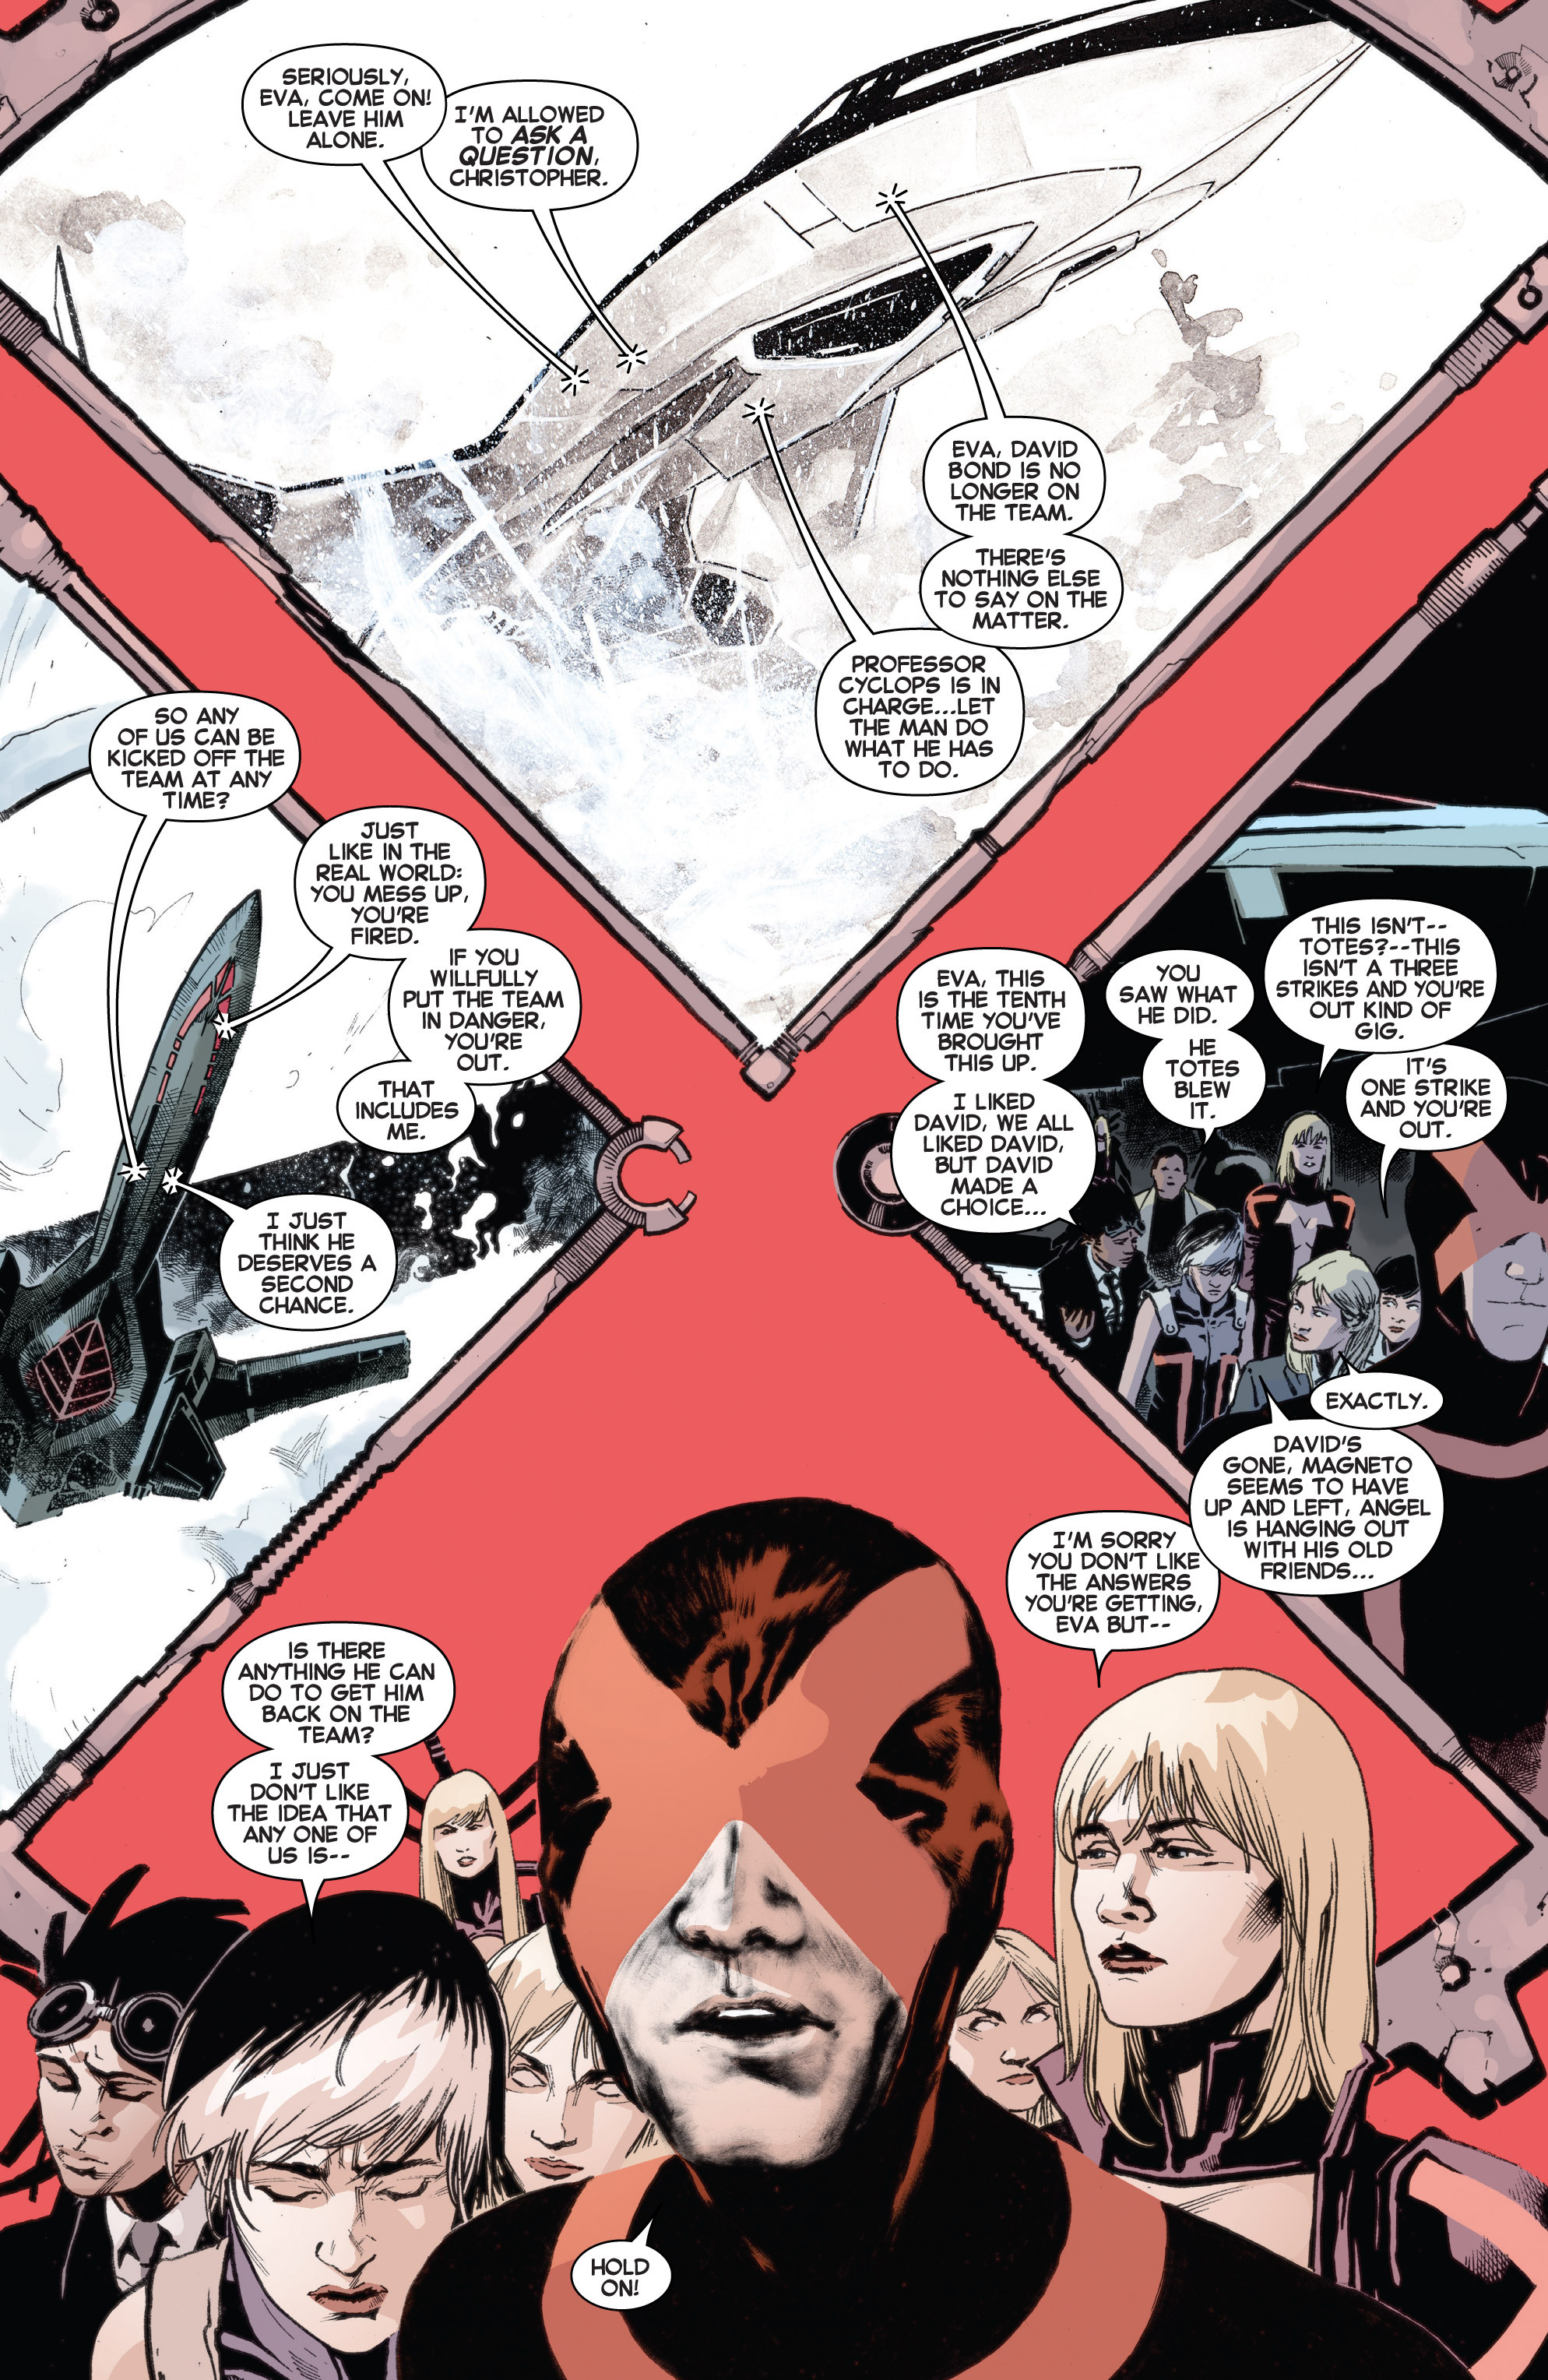 Read online Uncanny X-Men (2013) comic -  Issue # _TPB 3 - The Good, The Bad, The Inhuman - 87